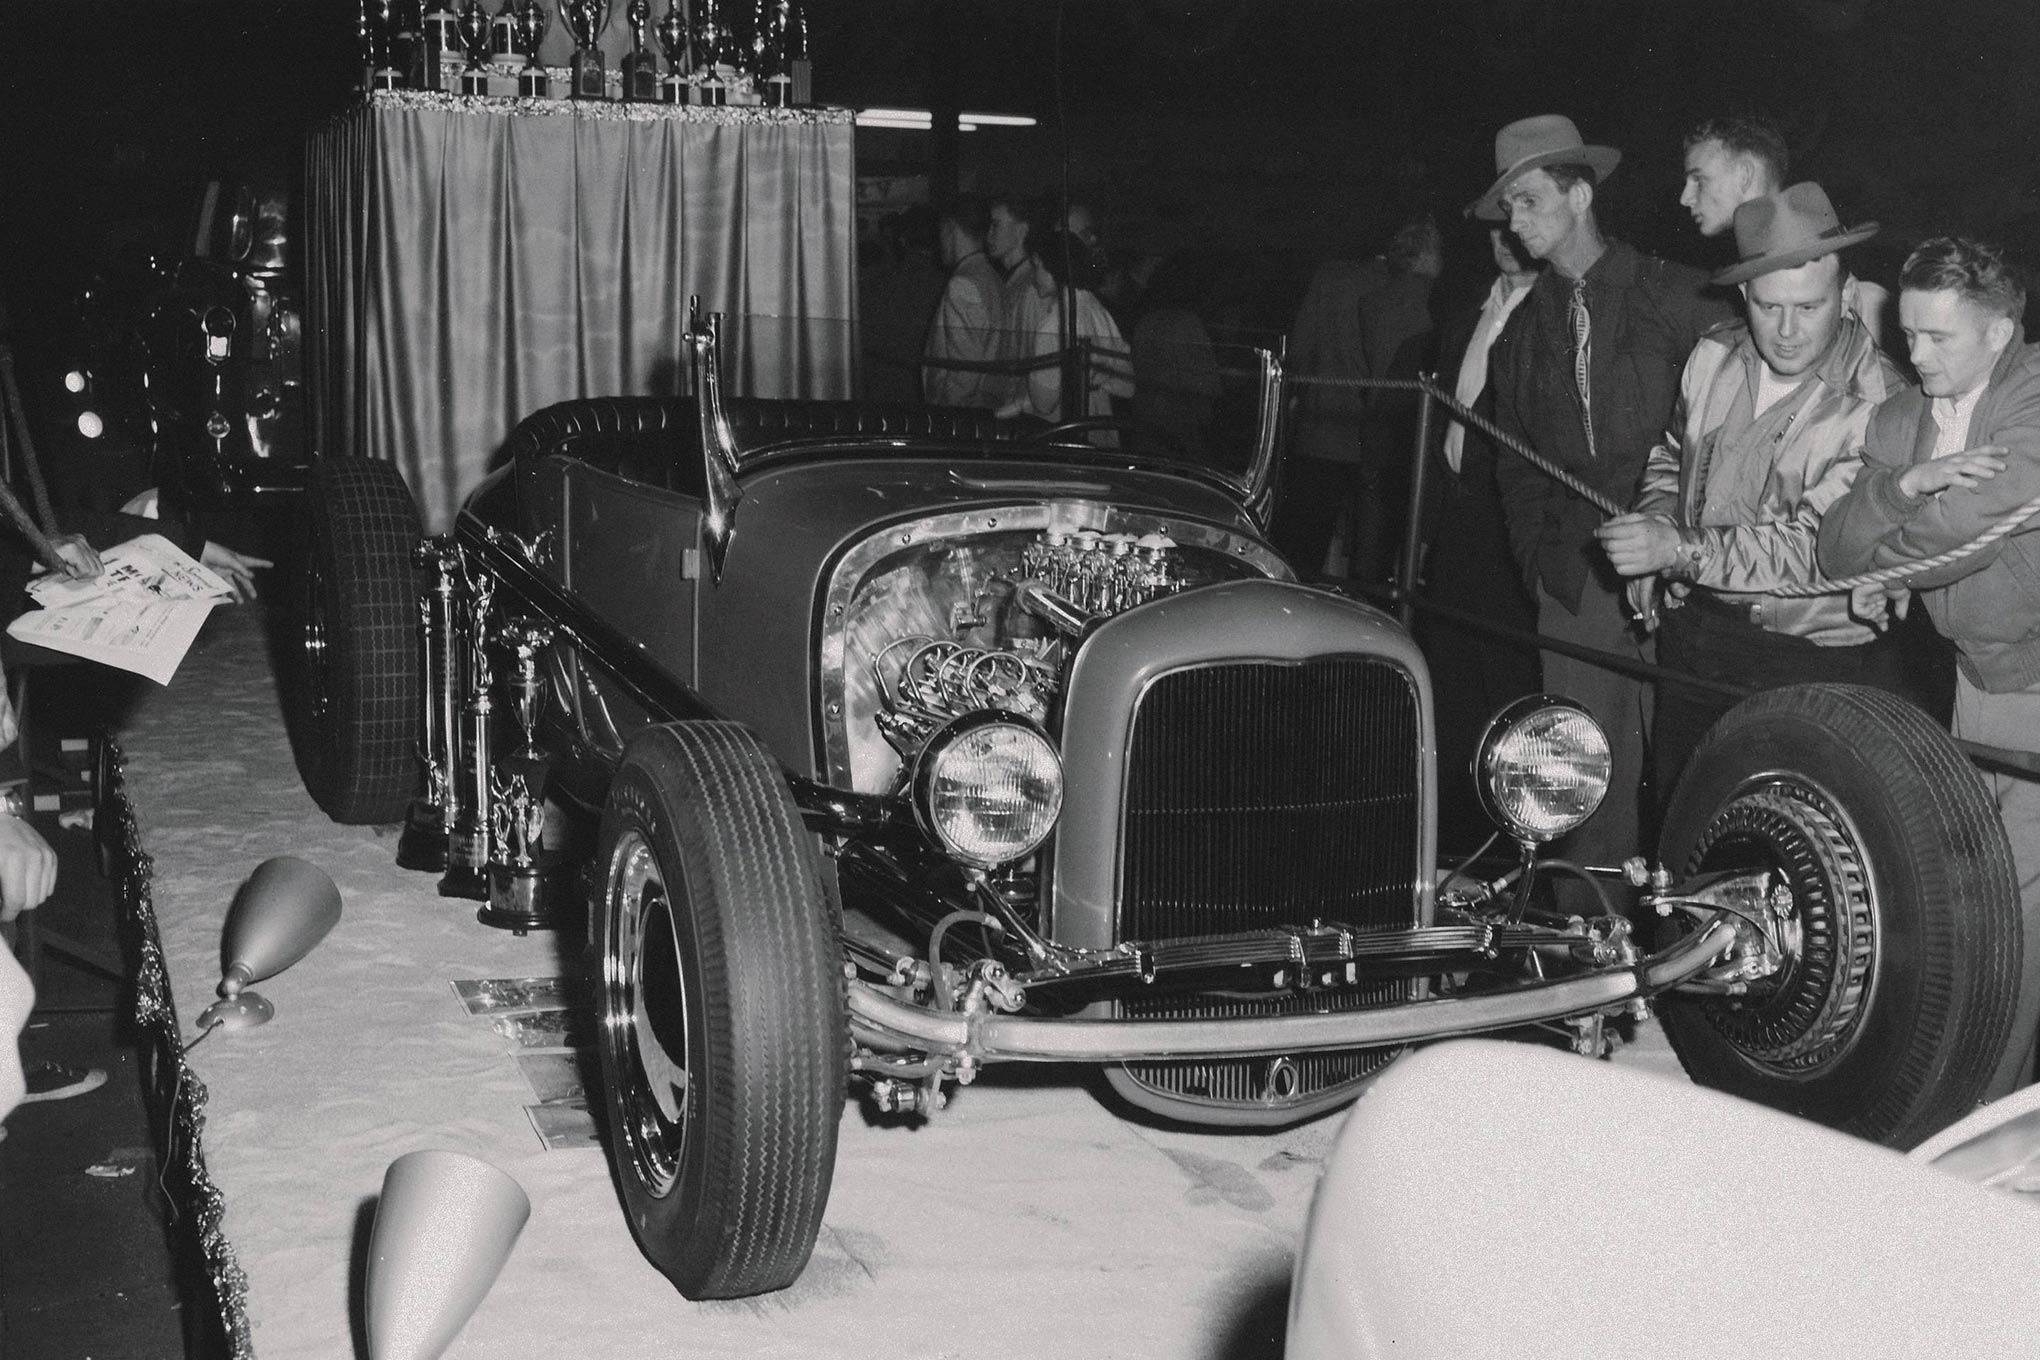 """Fitted with Kinmont brakes in the front, Dick Williams' immaculate '27 T won the AMBR at """"Oakland"""" in 1953. Its chromoly tubular chassis was a breakthrough. Later this car turned 123.636 mph at Bonneville. This roadster appeared at Pebble Beach in 1997; it's now owned by Blackie Gejeian."""